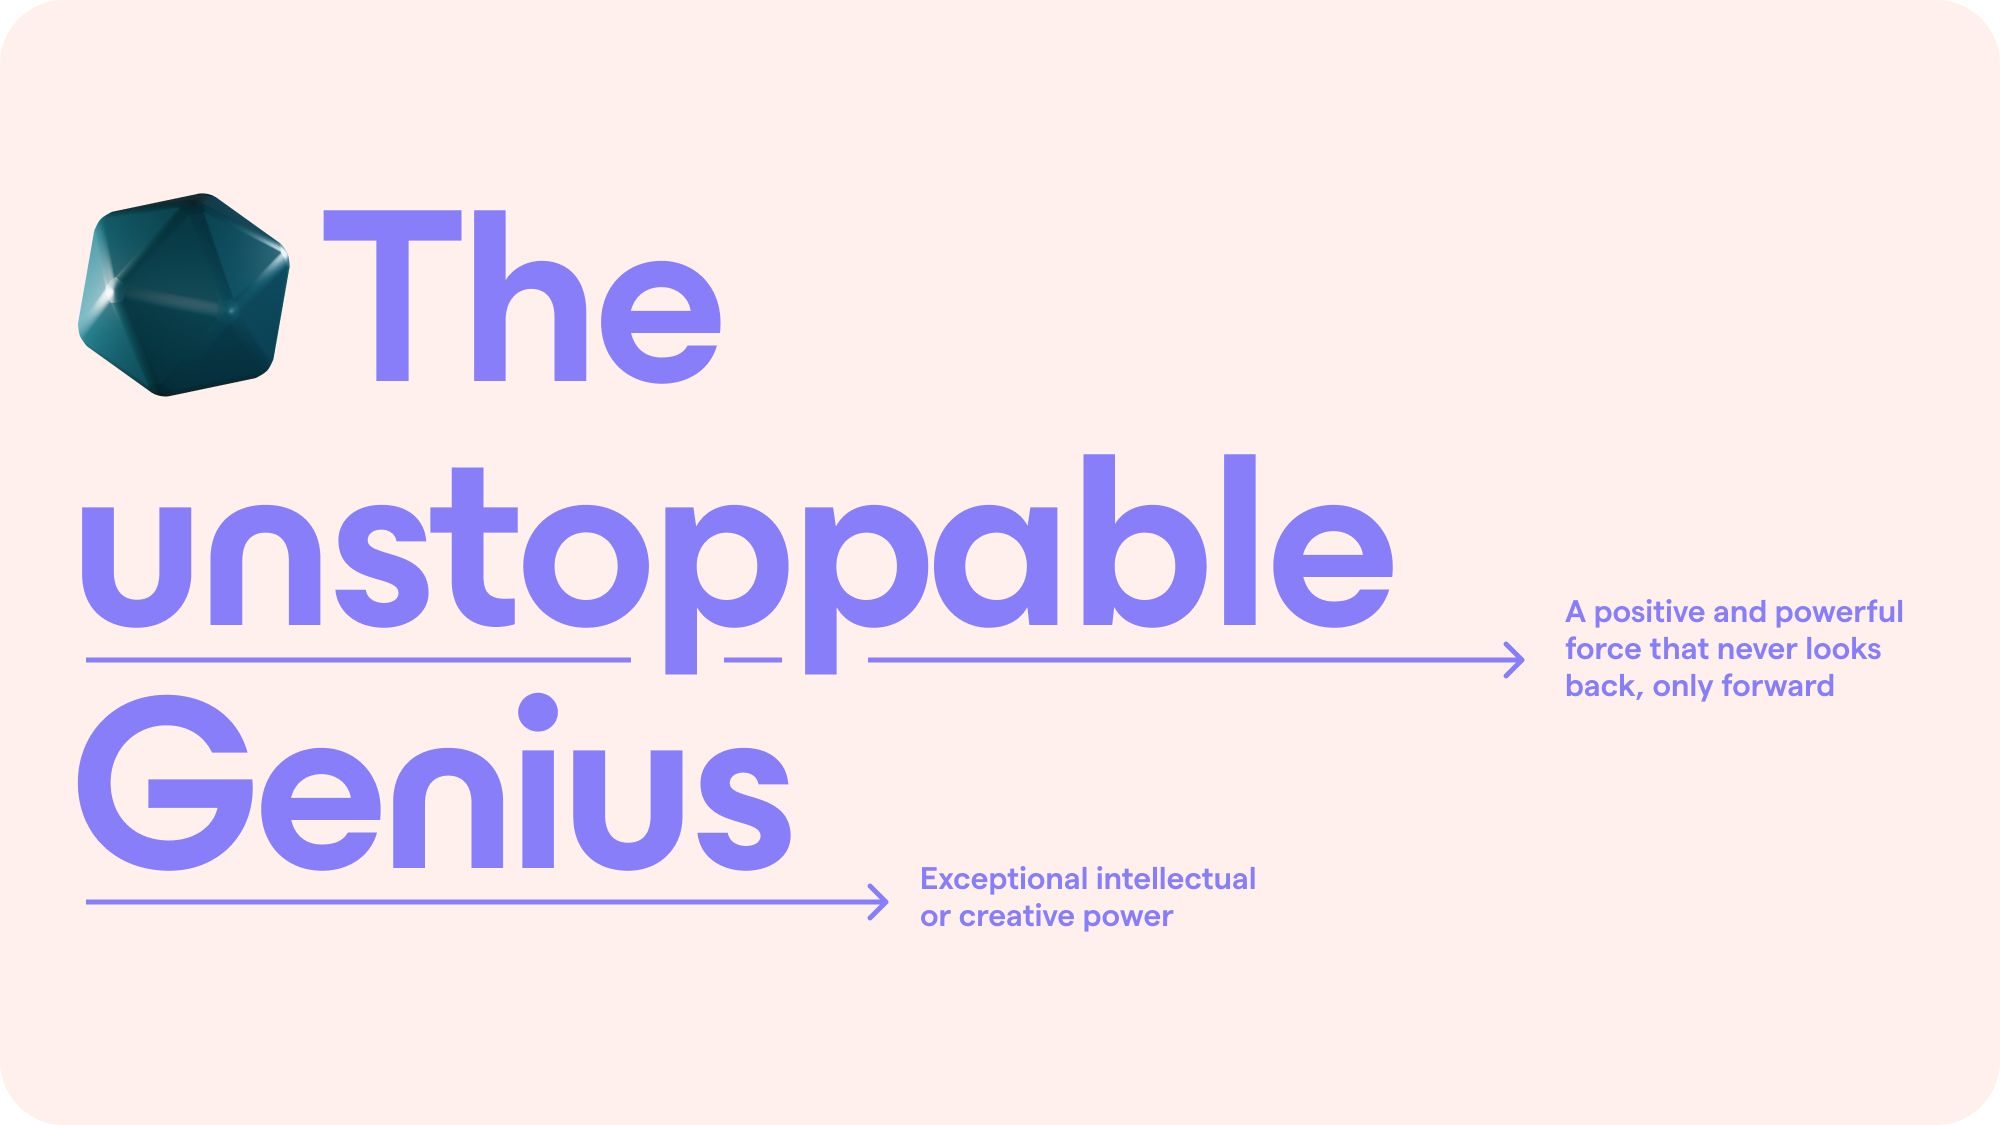 Our brand persona, the unstoppable Genius.